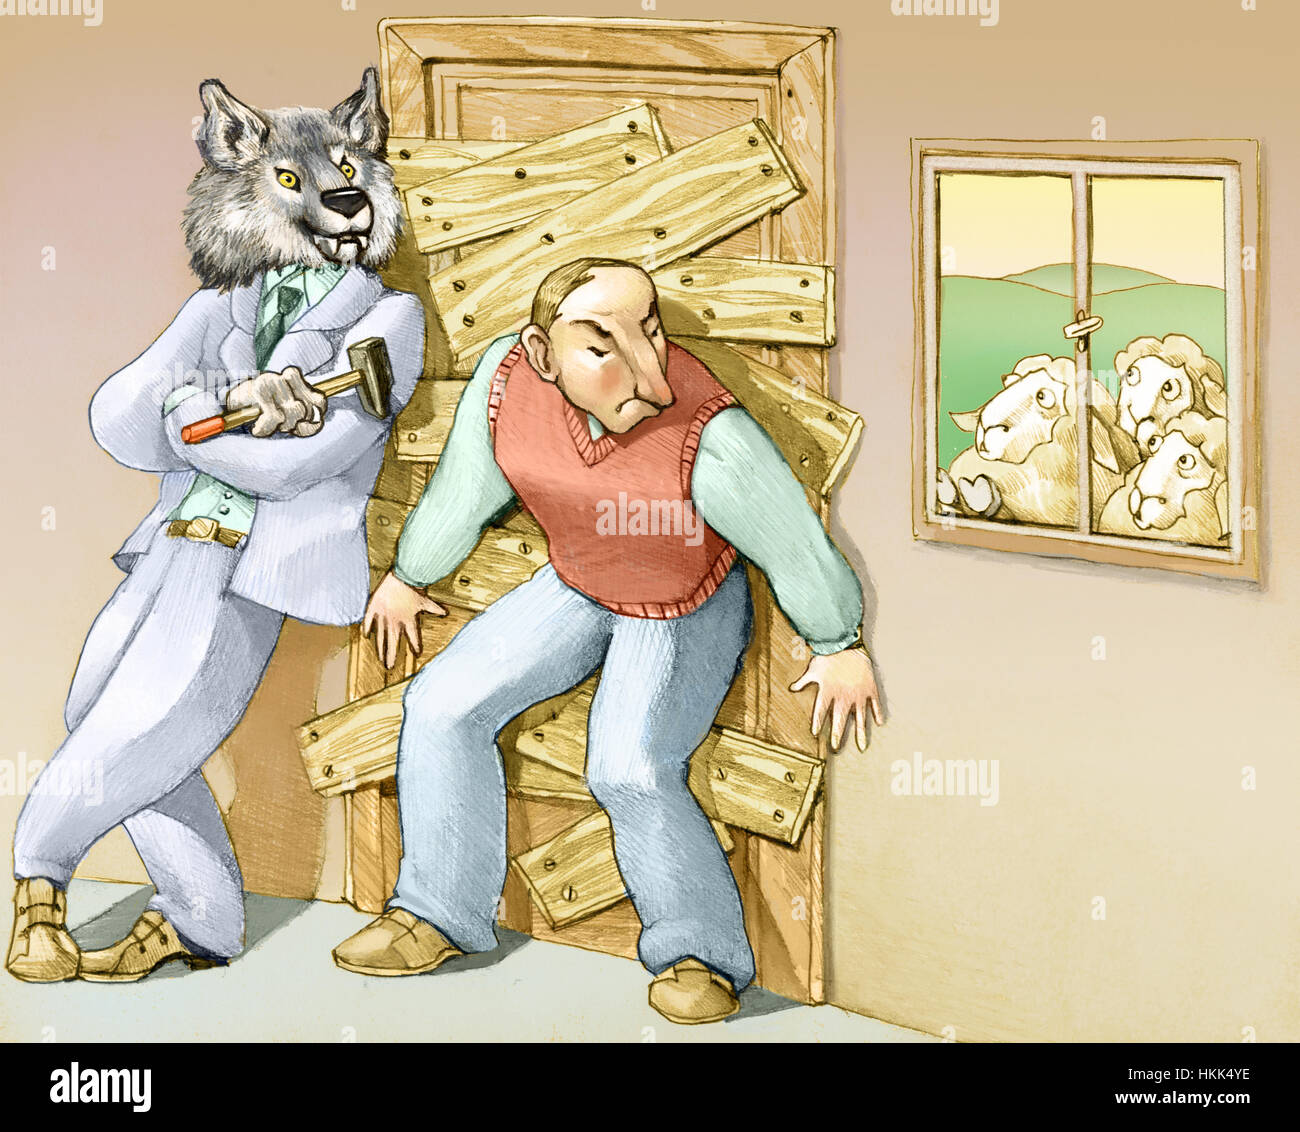 a man thinks that the danger is out and closes at home barring the door with the help of a big bad wolf - Stock Image